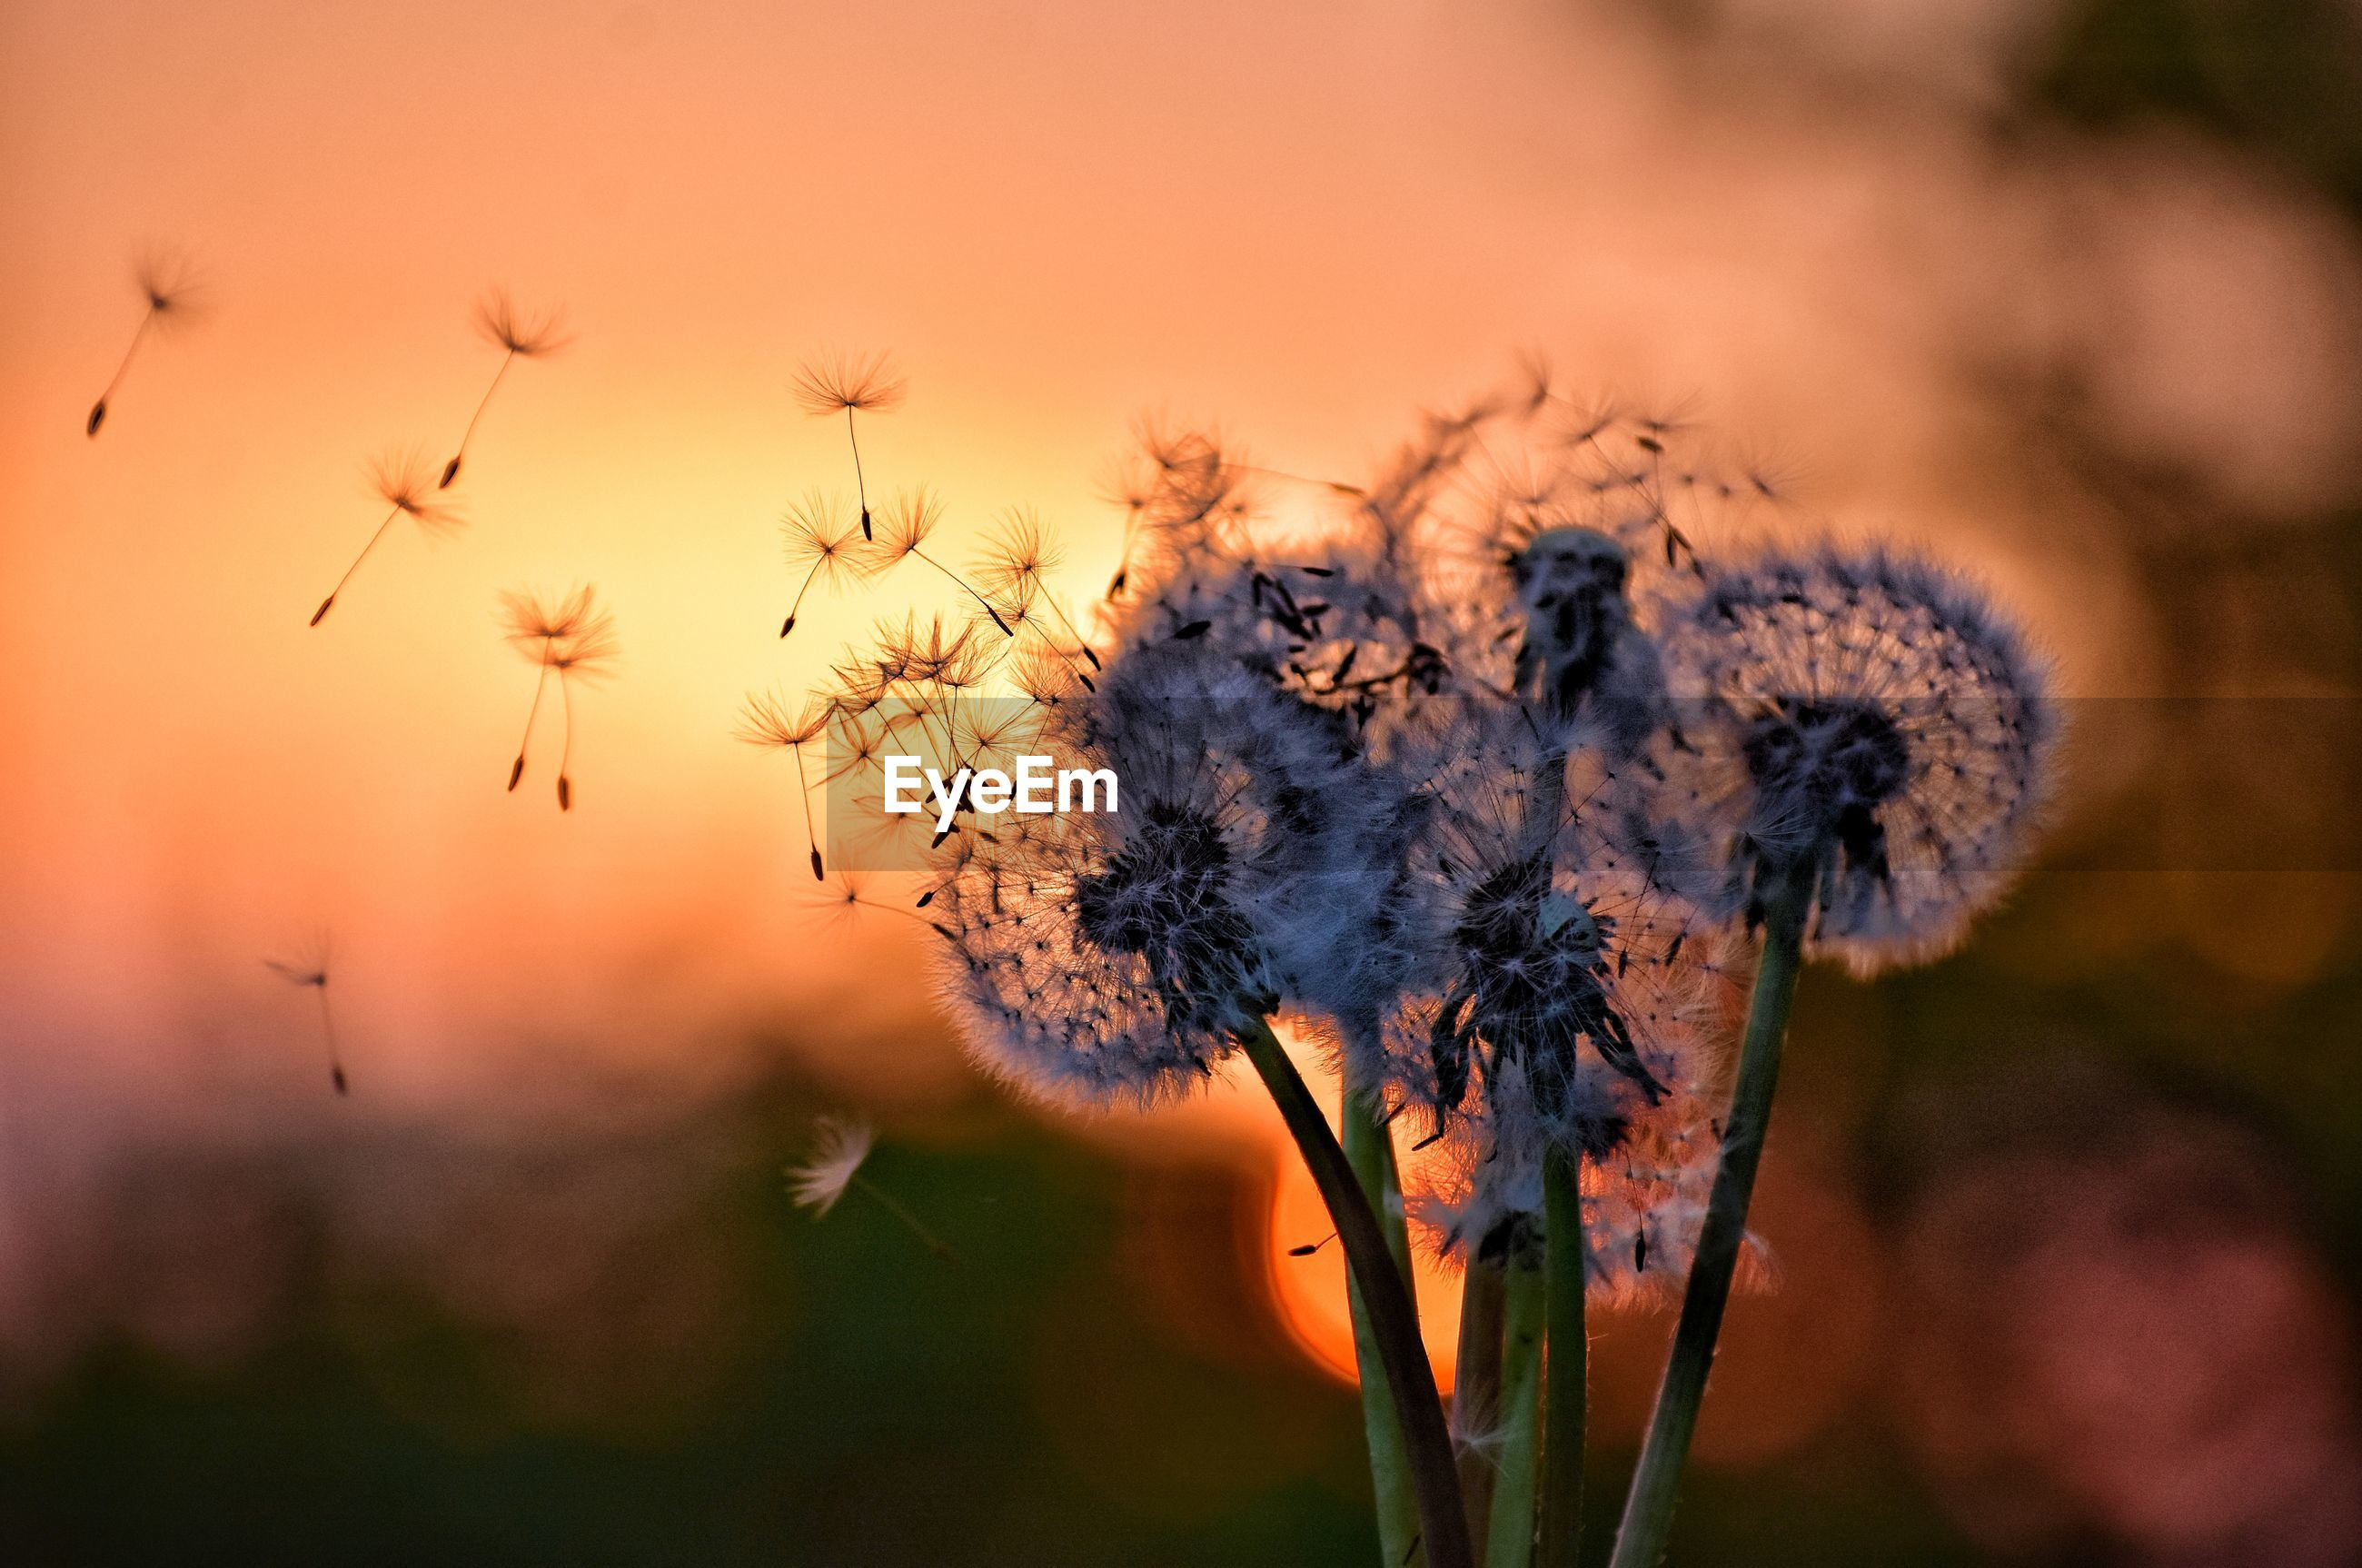 Fluffy dandelions on sunset background in gdynia